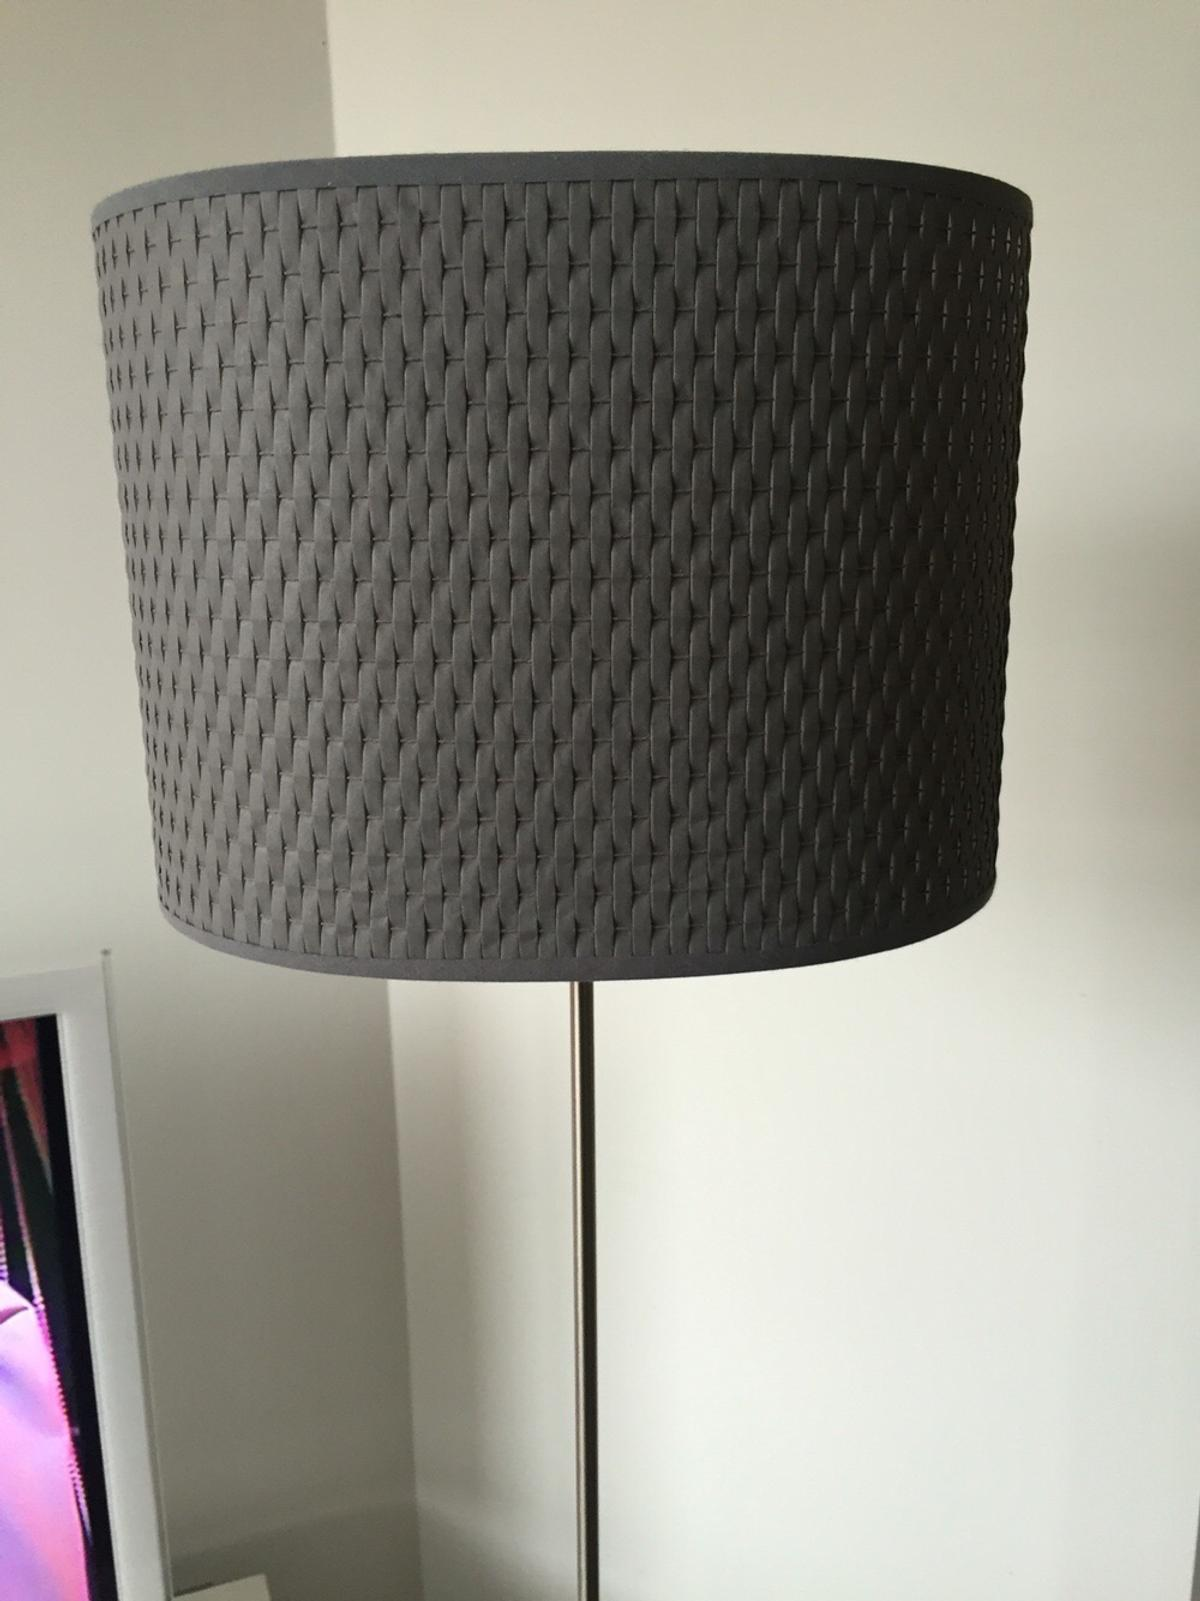 IKEA ALANG floor lamp in NW6 London for